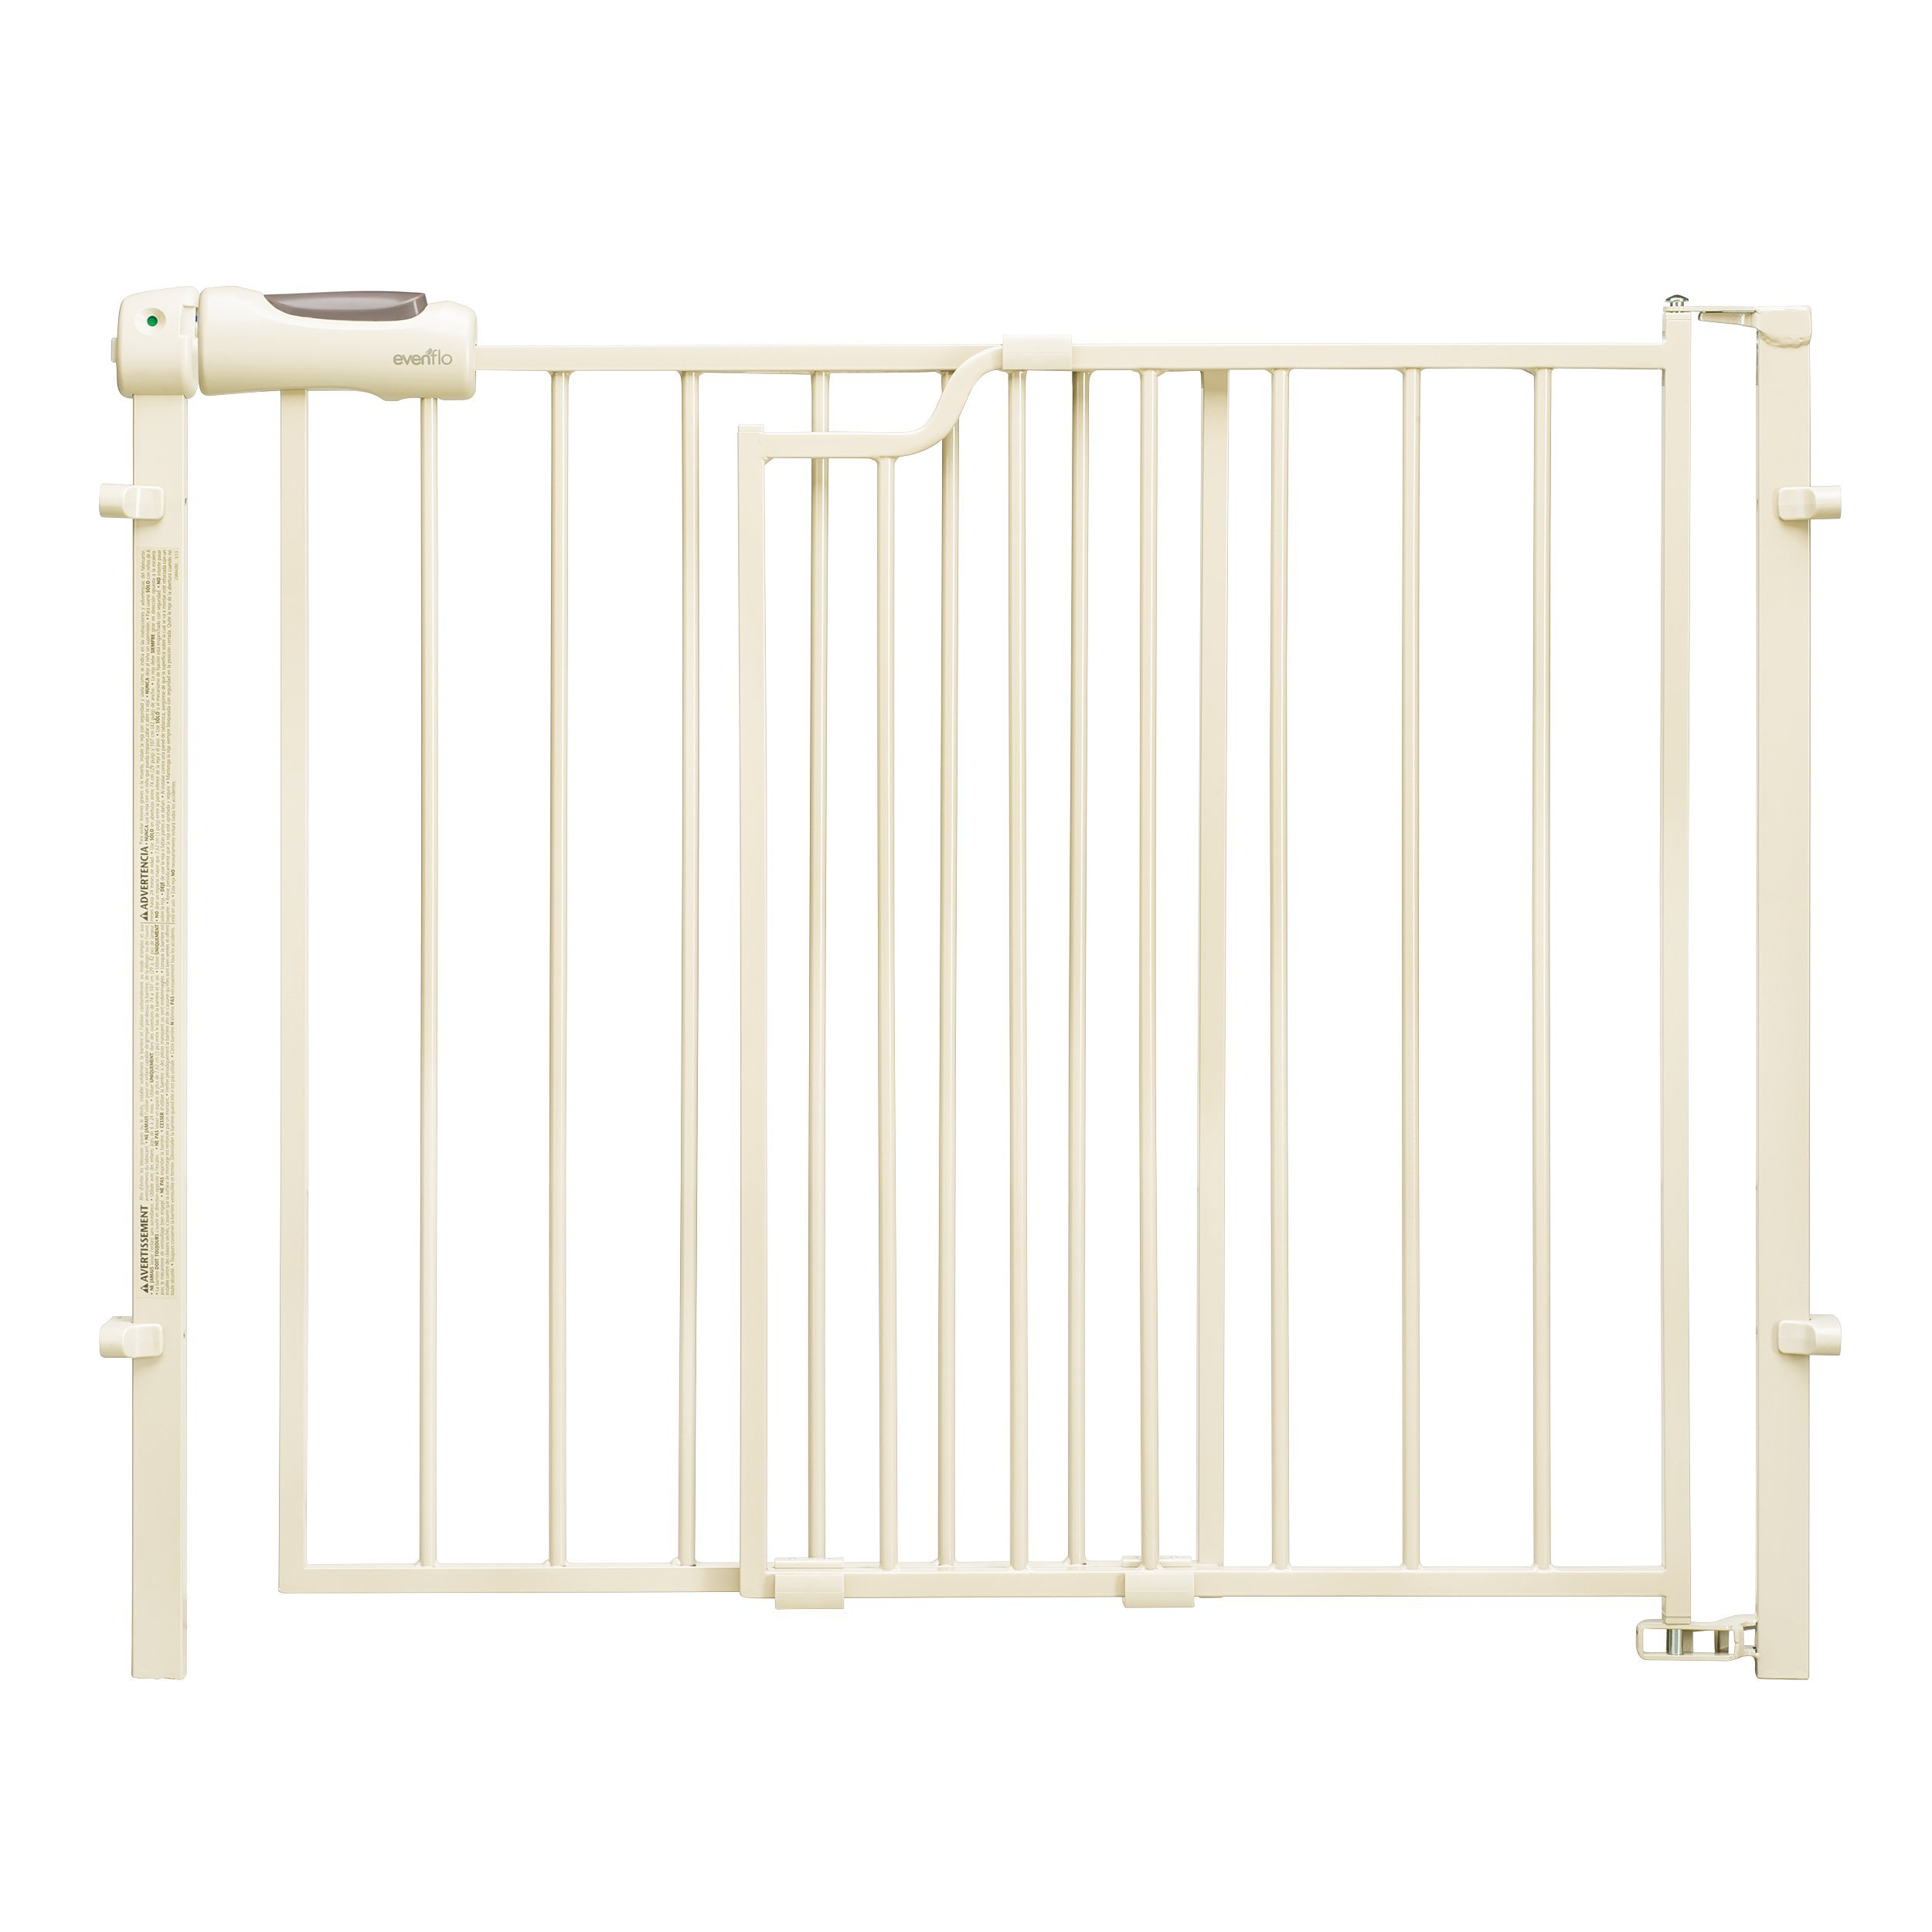 Evenflo Easy Walk Thru Top Of Stairs Gate by Evenflo (Image #2)